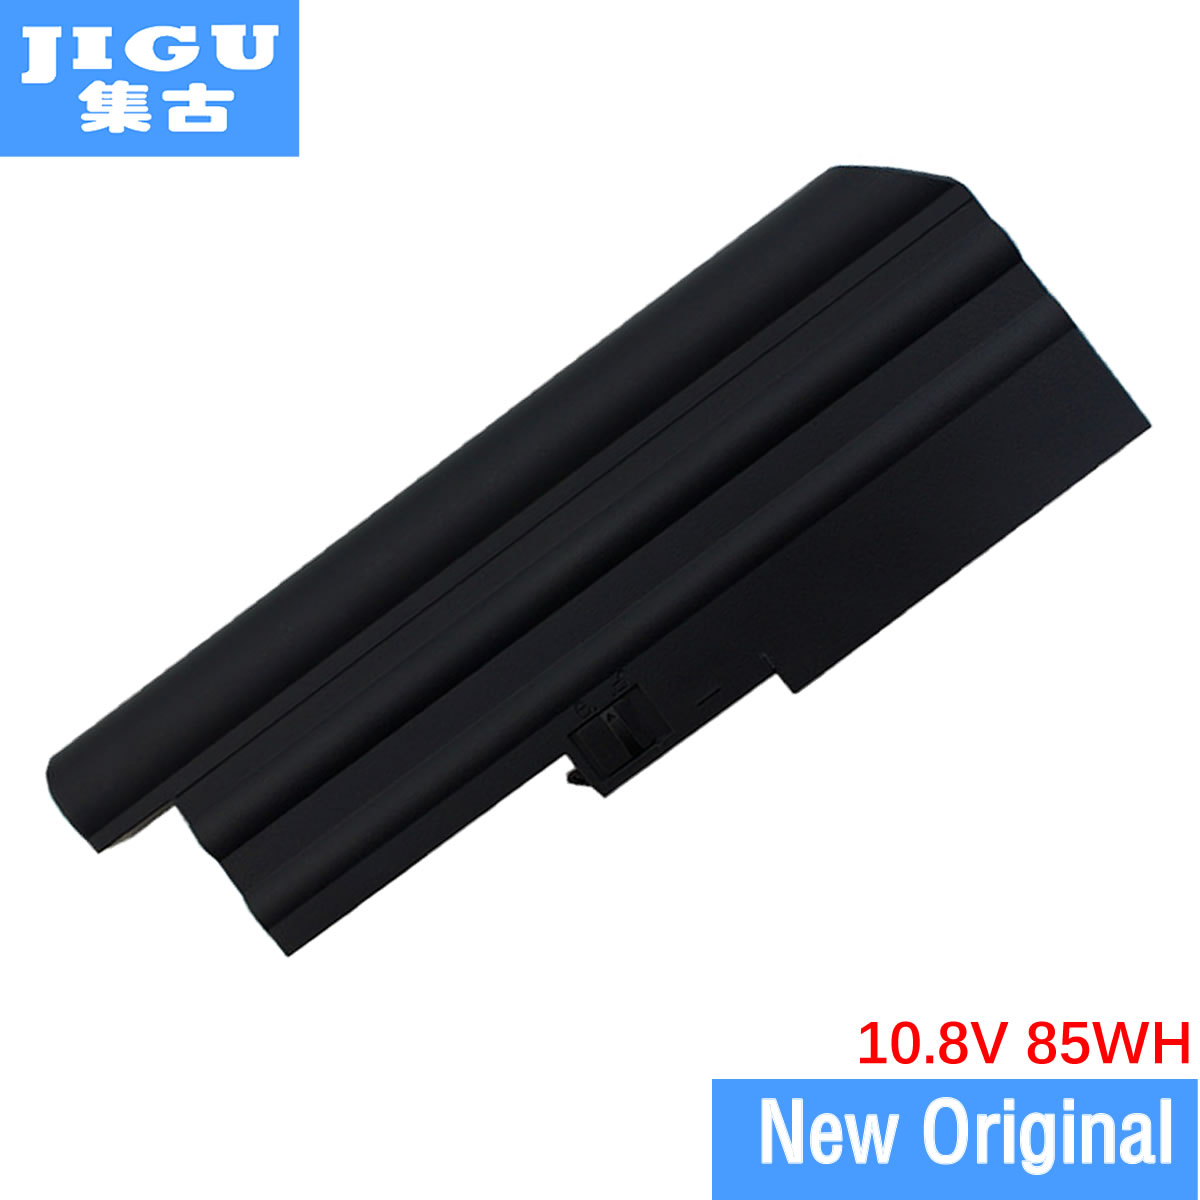 JIGU Original laptop Battery For ThinkPad R500 W500 T61 SL400 R60 R61 T500 T60p T60 SL300 SL500 Z60m Z61e m p 9CELLS jigu original laptop battery for lenovo for thinkpad sl400 sl410 sl410k sl500 sl510 t410 t410i t420 t420i t520 w510 w520